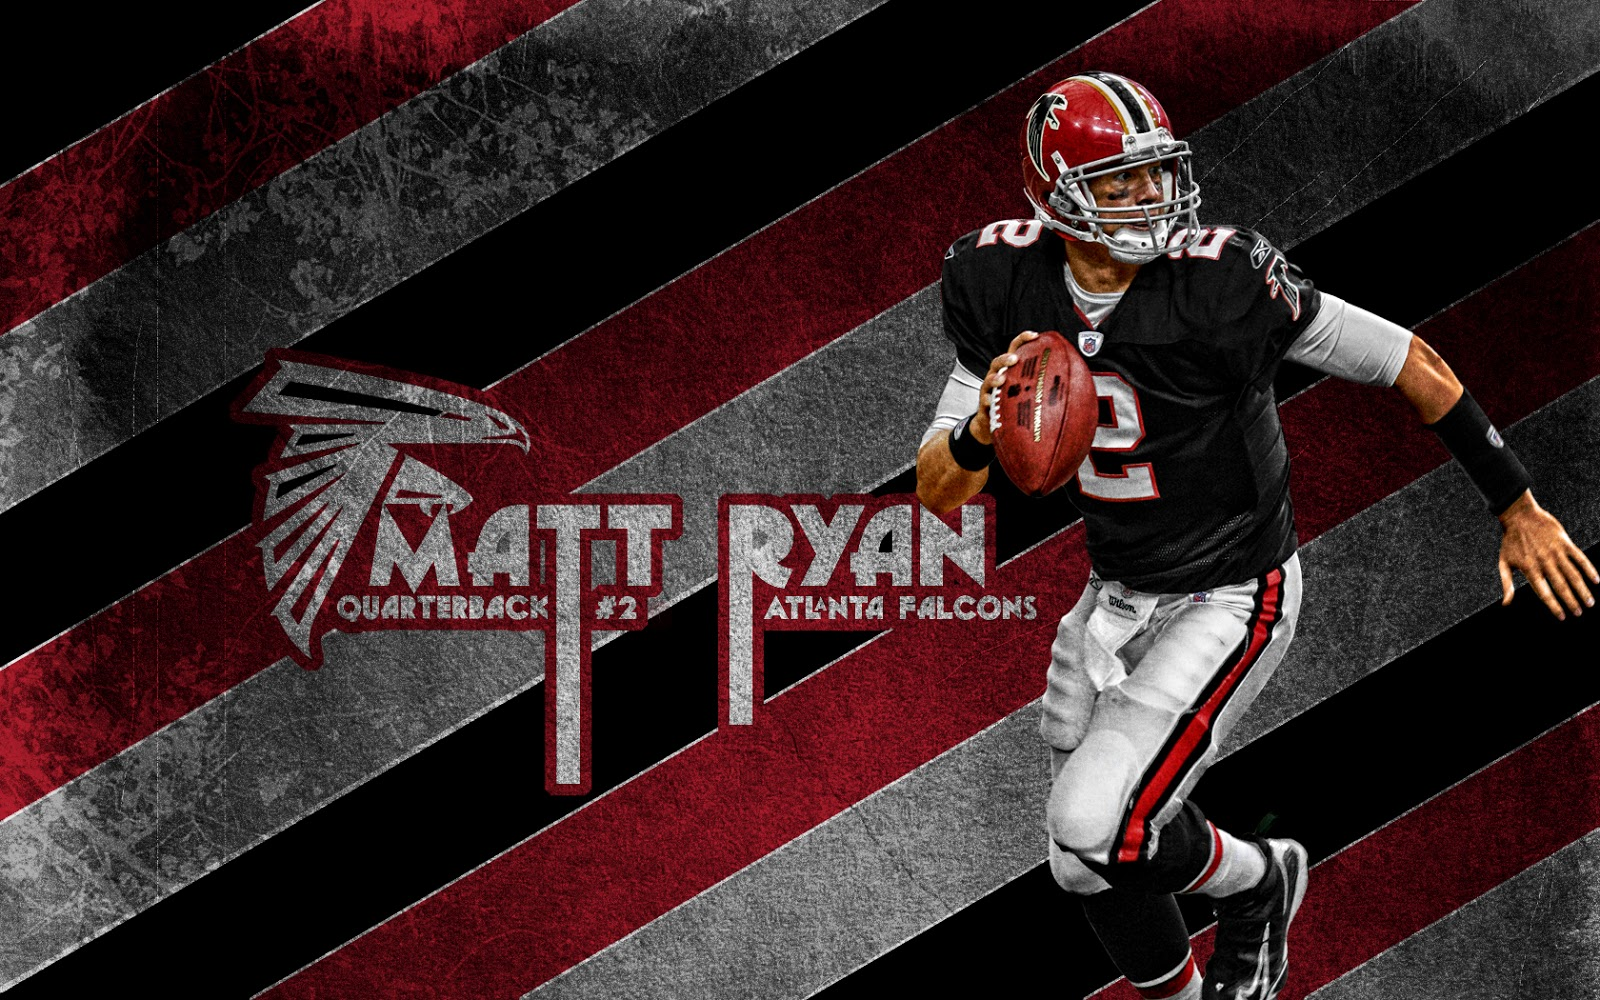 Matt Ryan Atlanta Falcons Hd Background Wallpapers Free: FOOTBALLPLAYERSDELUXE: MATT RYAN